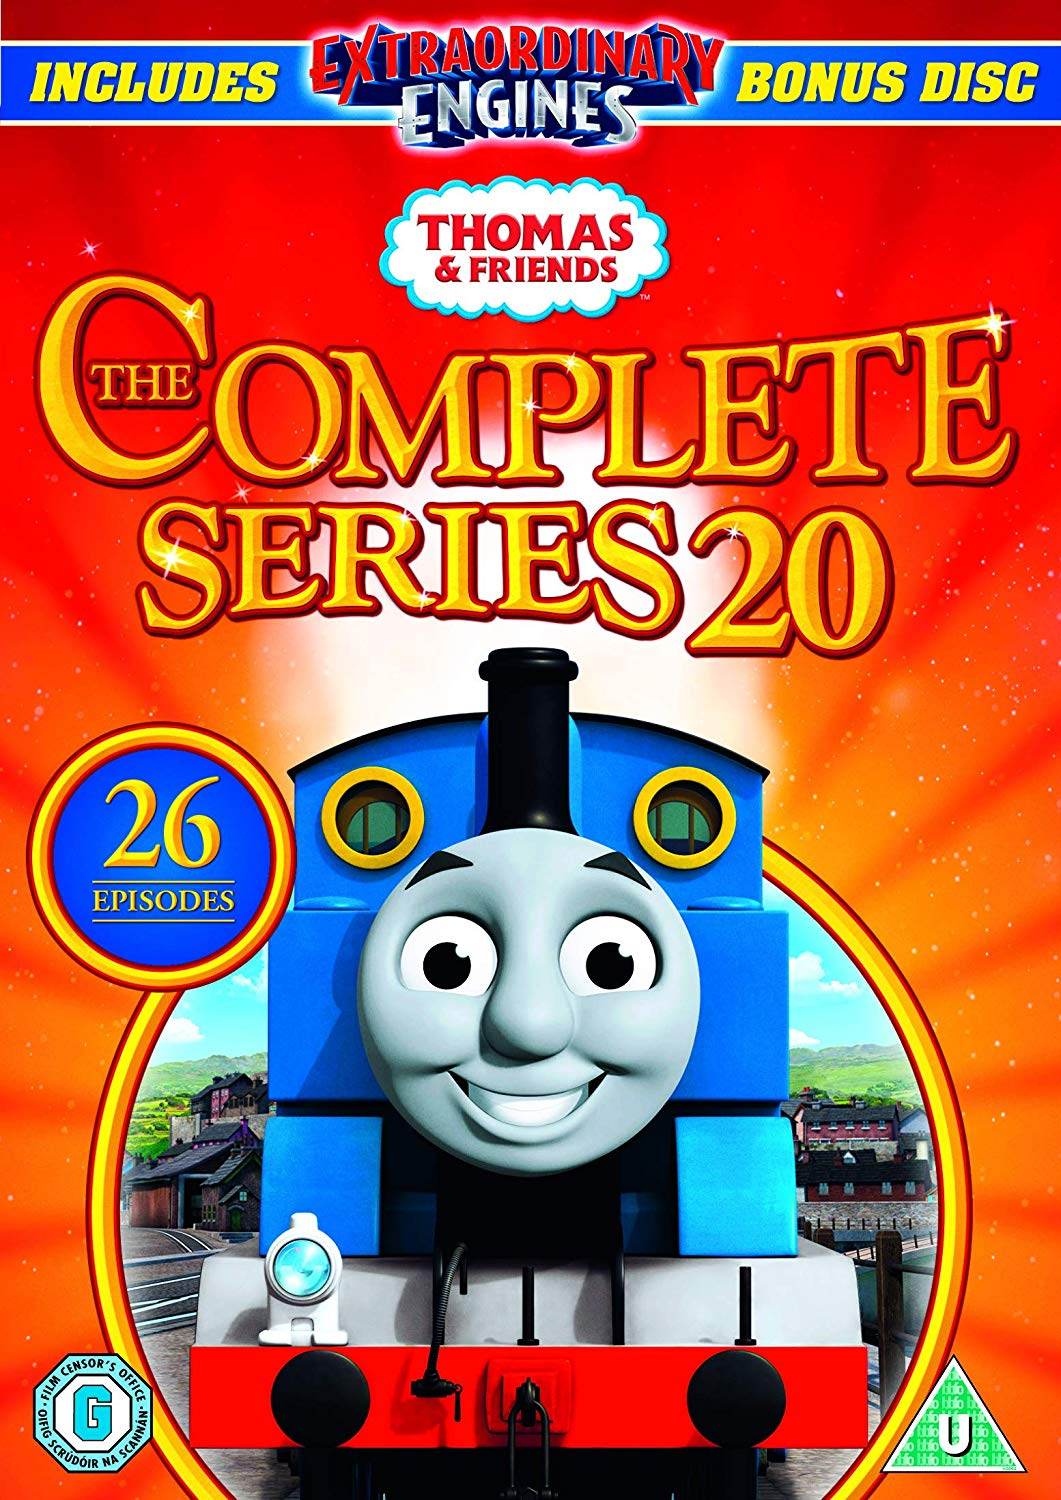 The Complete Series 20